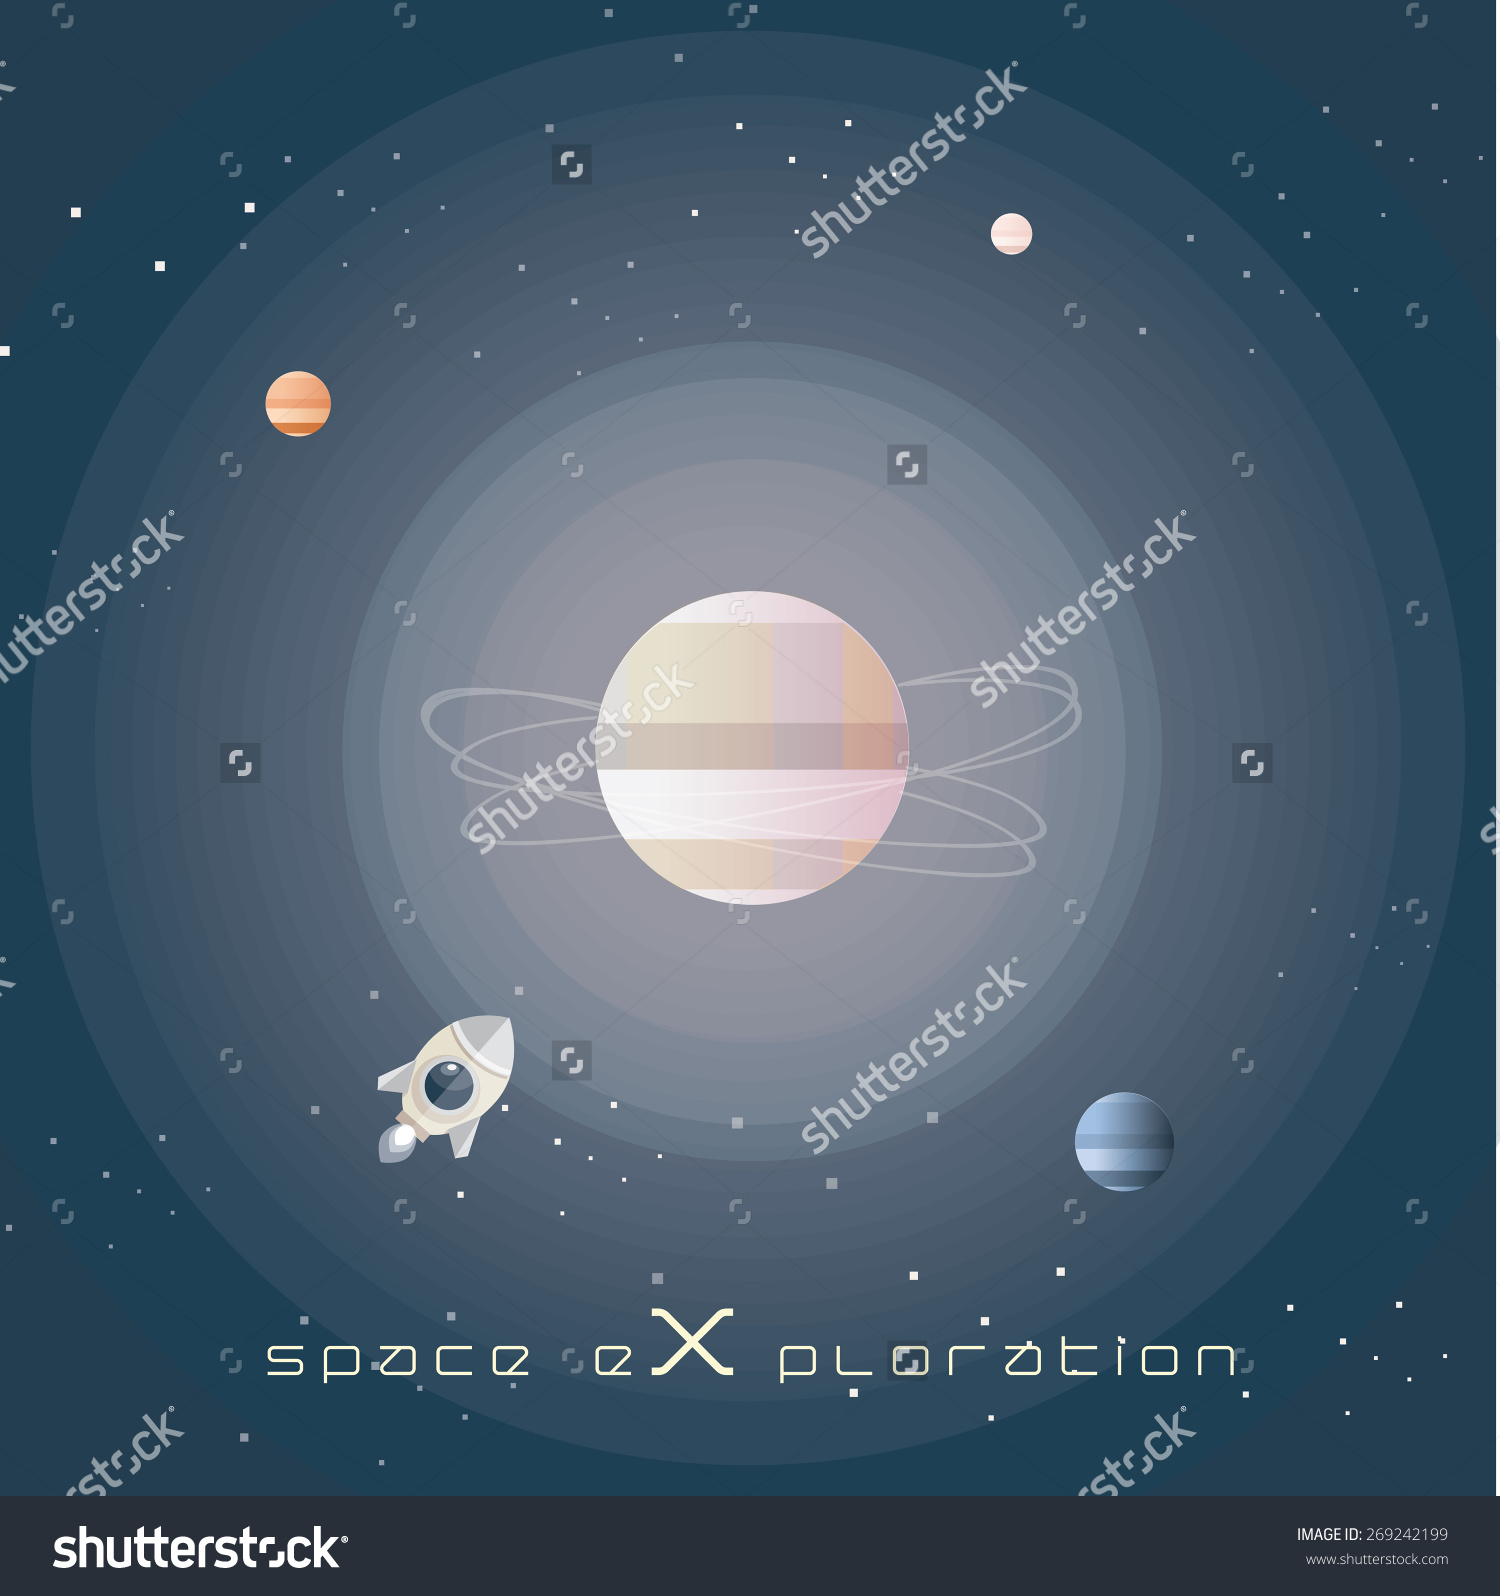 Space Exploration Abstract Vector Illustration Wallpaper Stock.